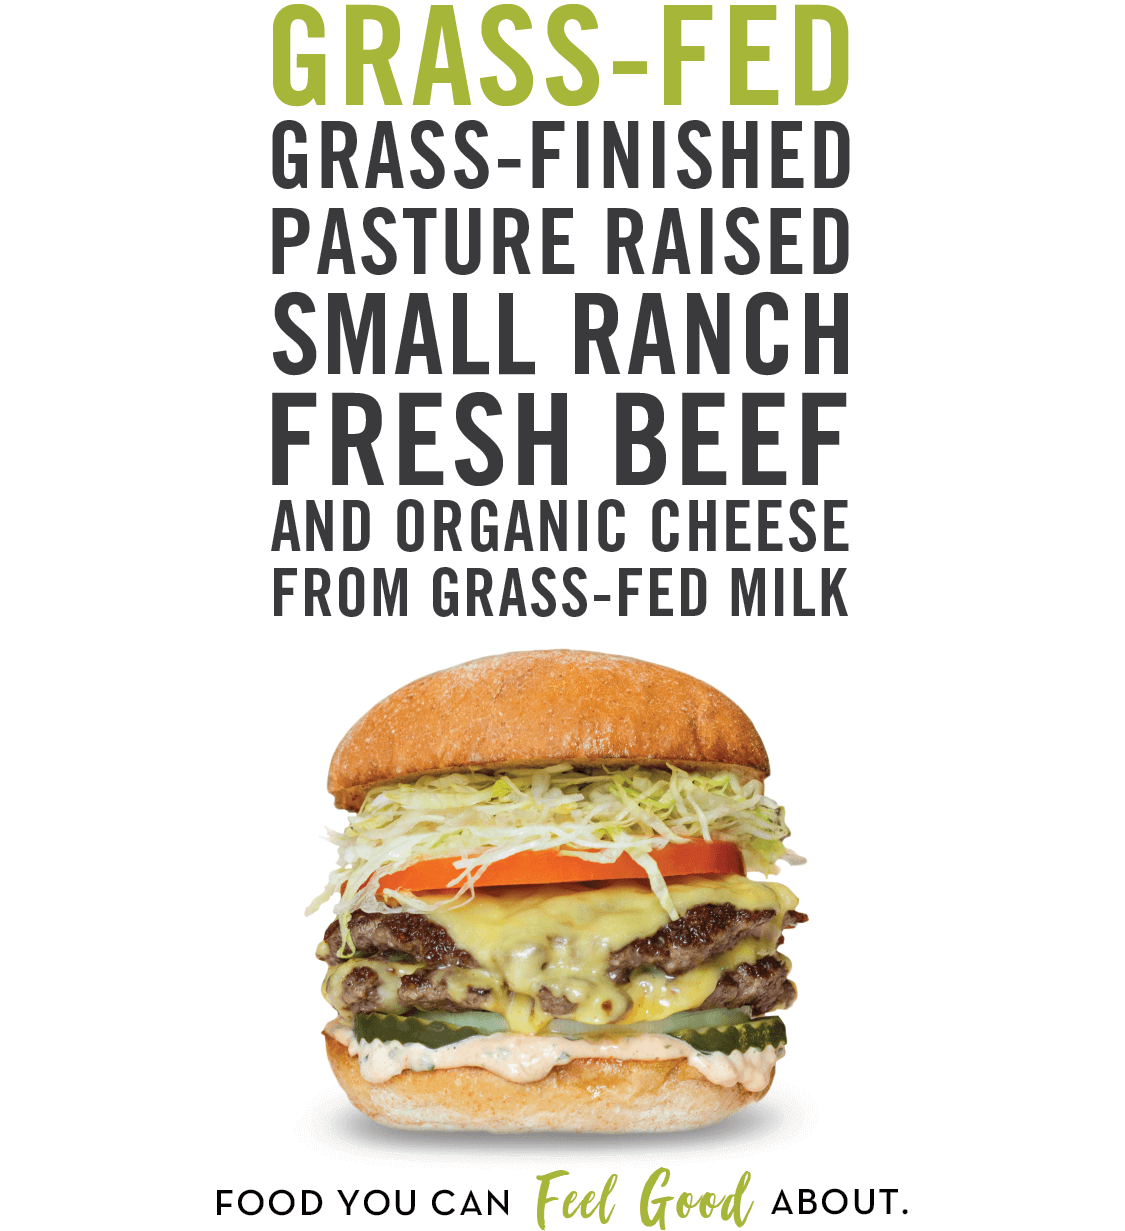 The Husky - grass-fed, grass-finished pasture raised beef and organic cheese from grass-fed milk, only at Burger Lounge